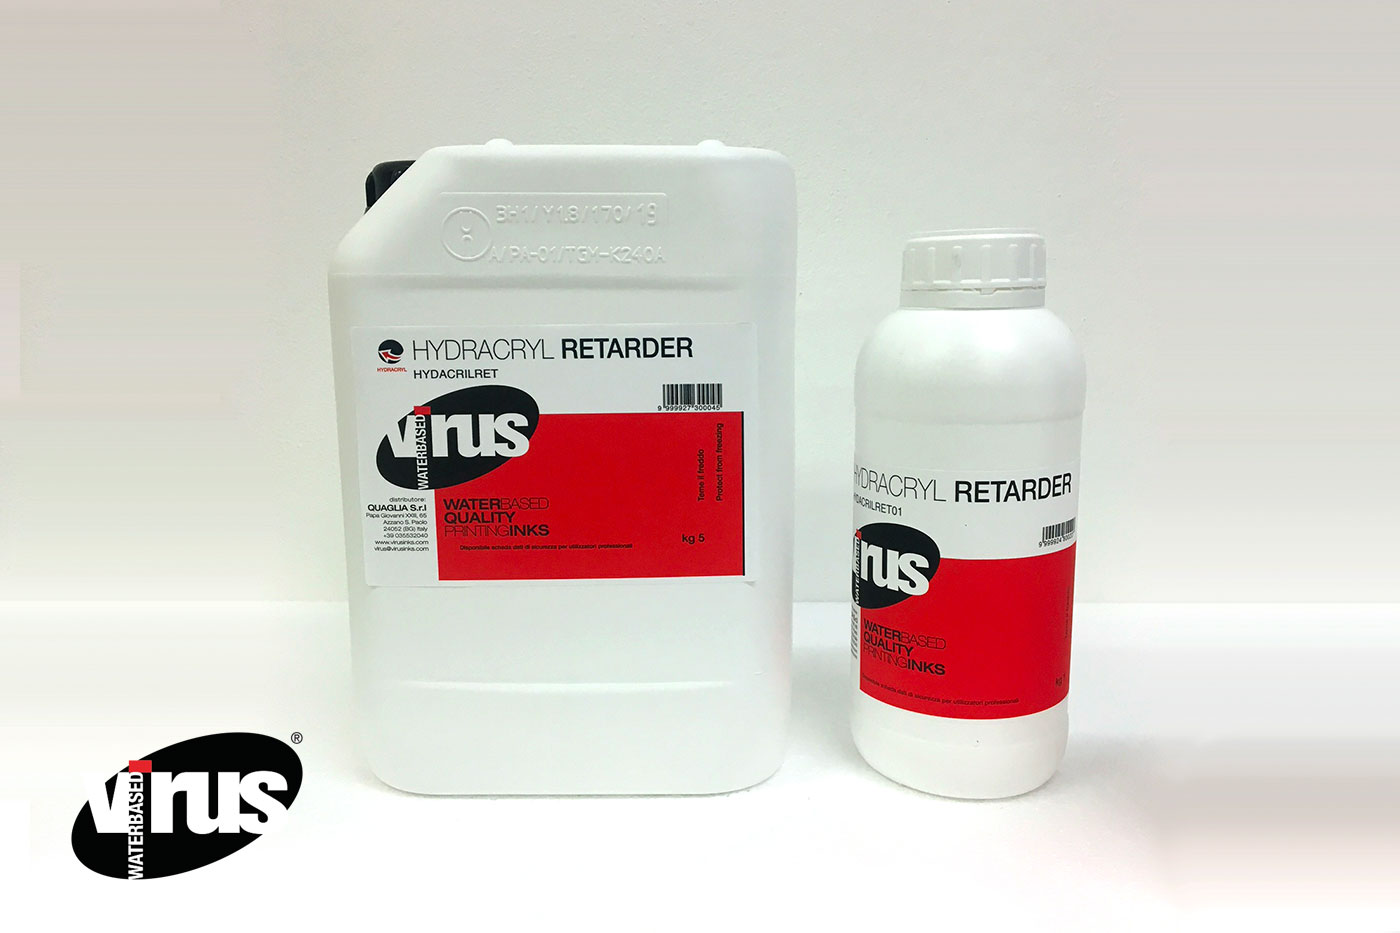 Virus Hydracyl Retarder